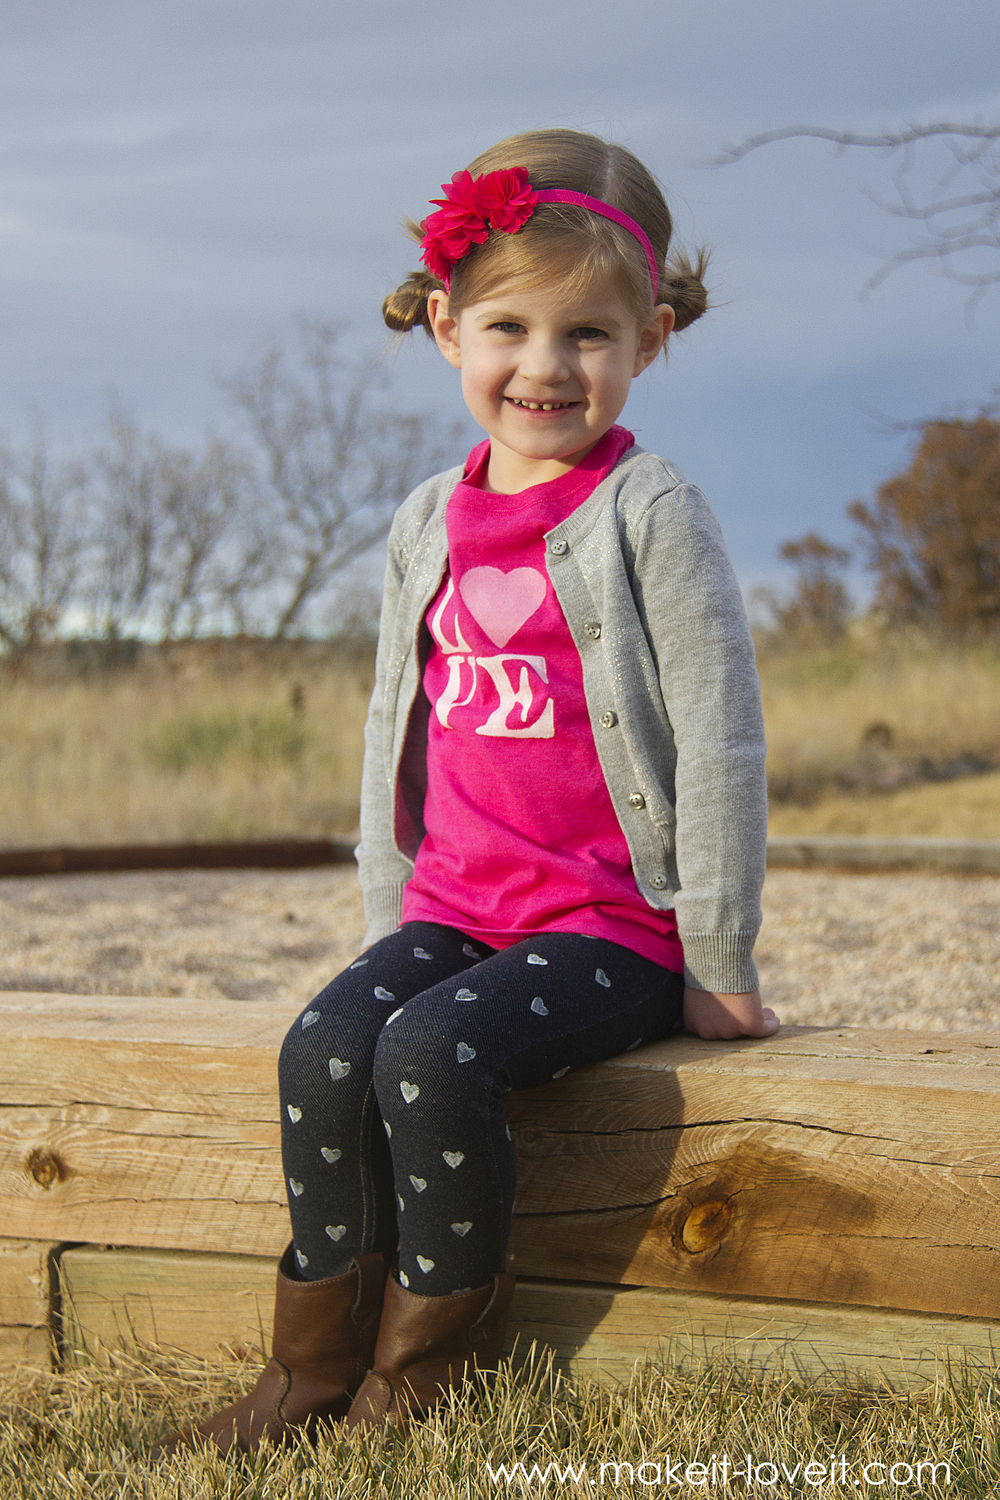 a LOVE Shirt and Mini Heart Stamped Pants